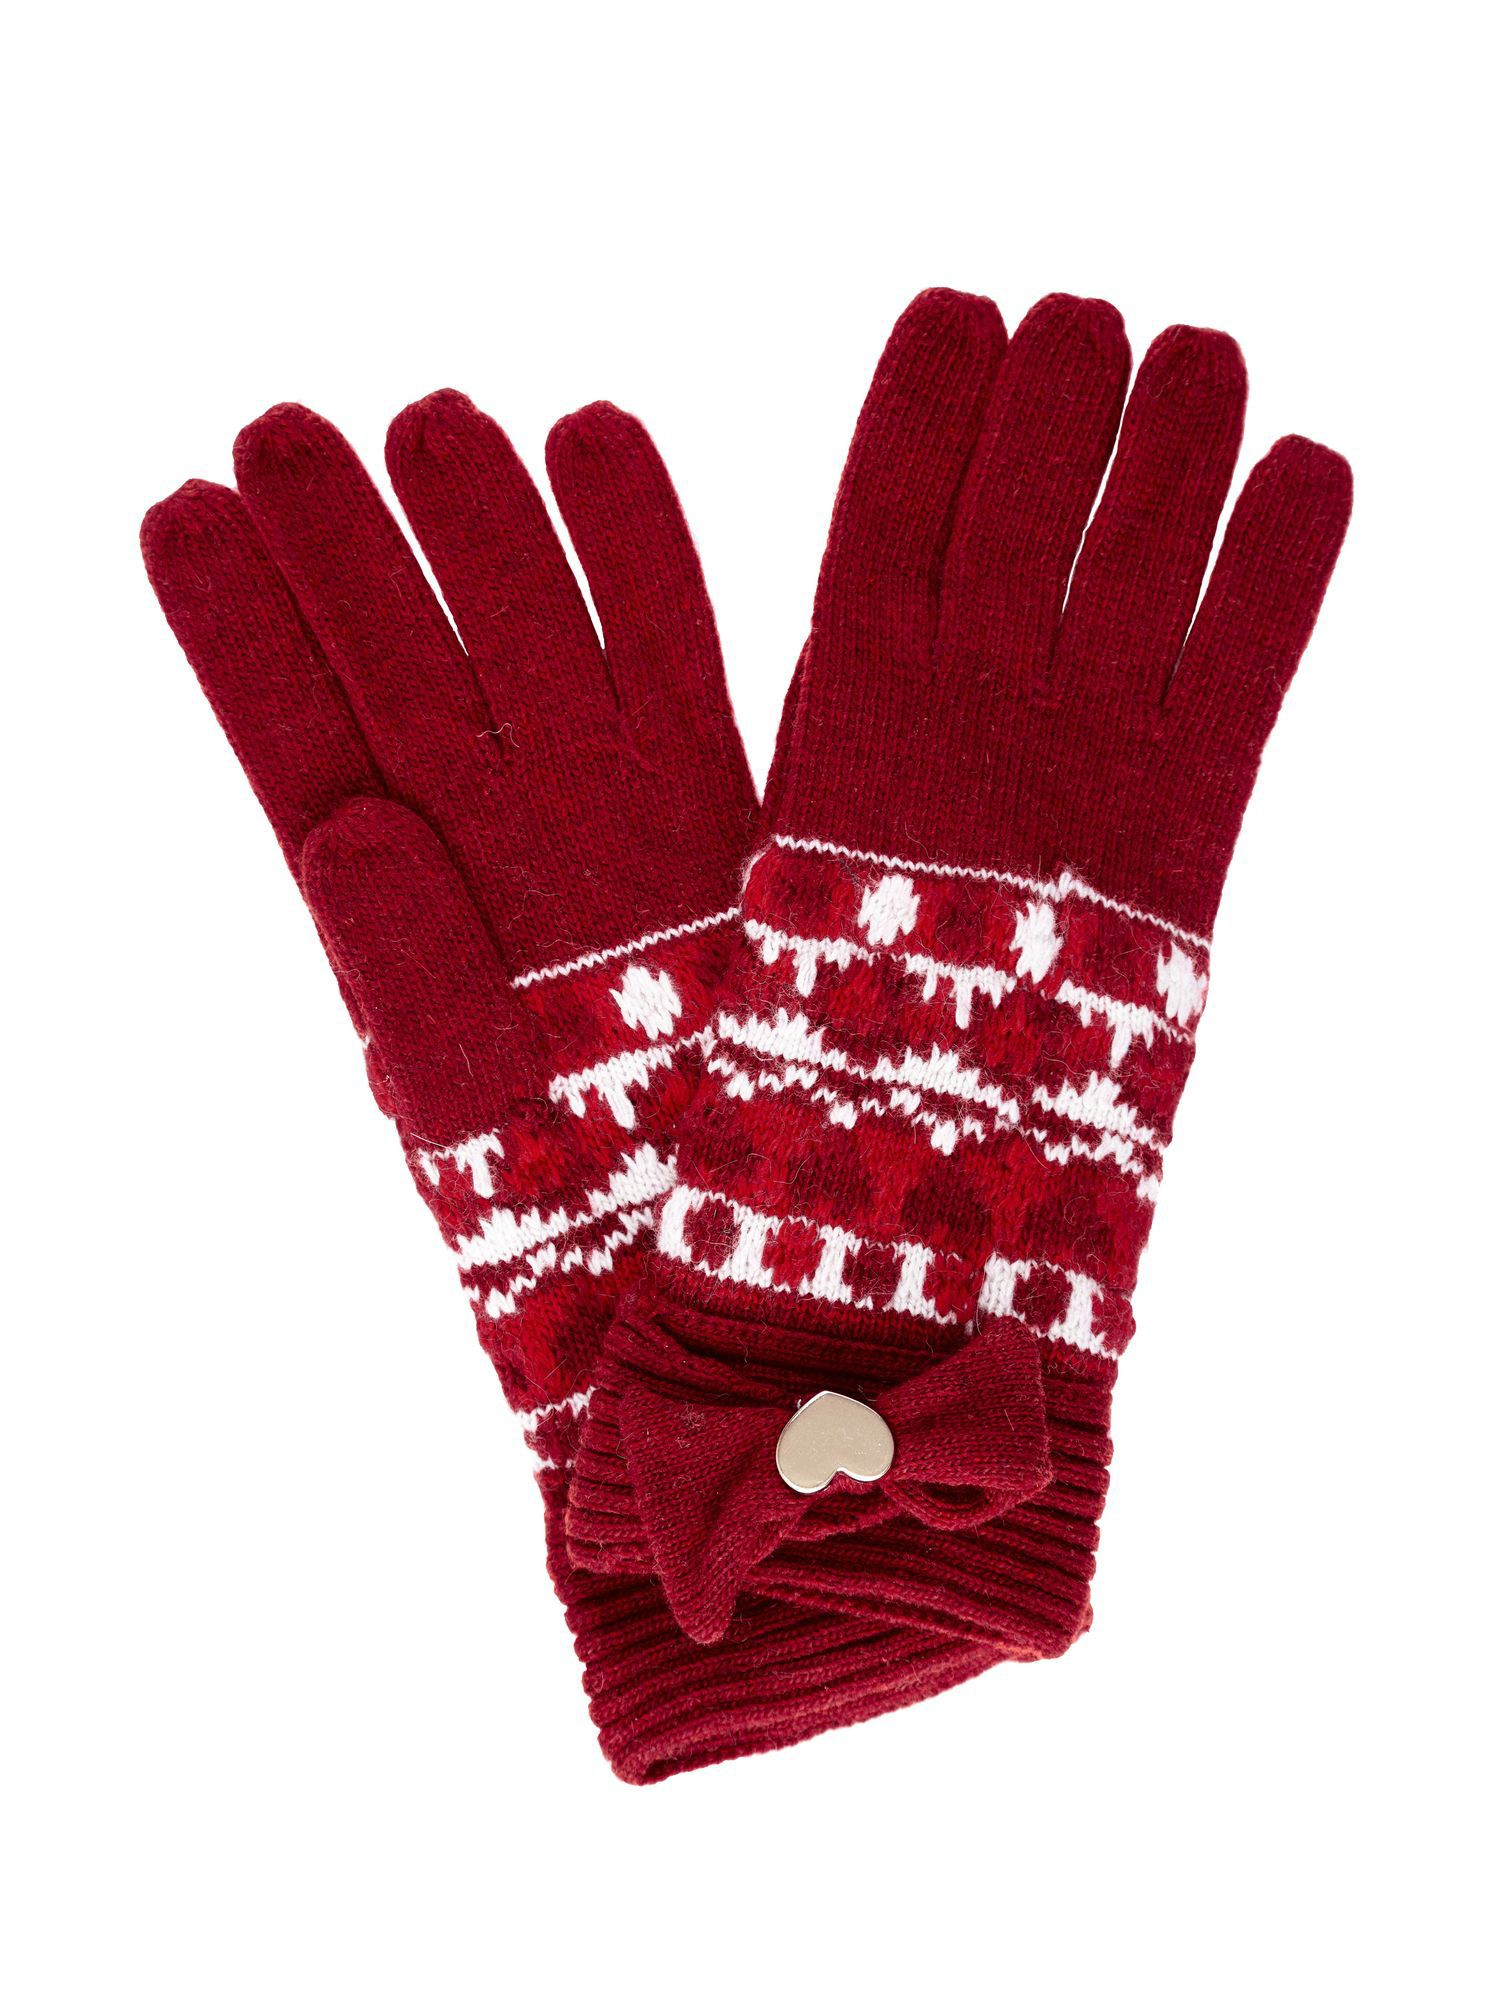 Fairisle knit gloves.